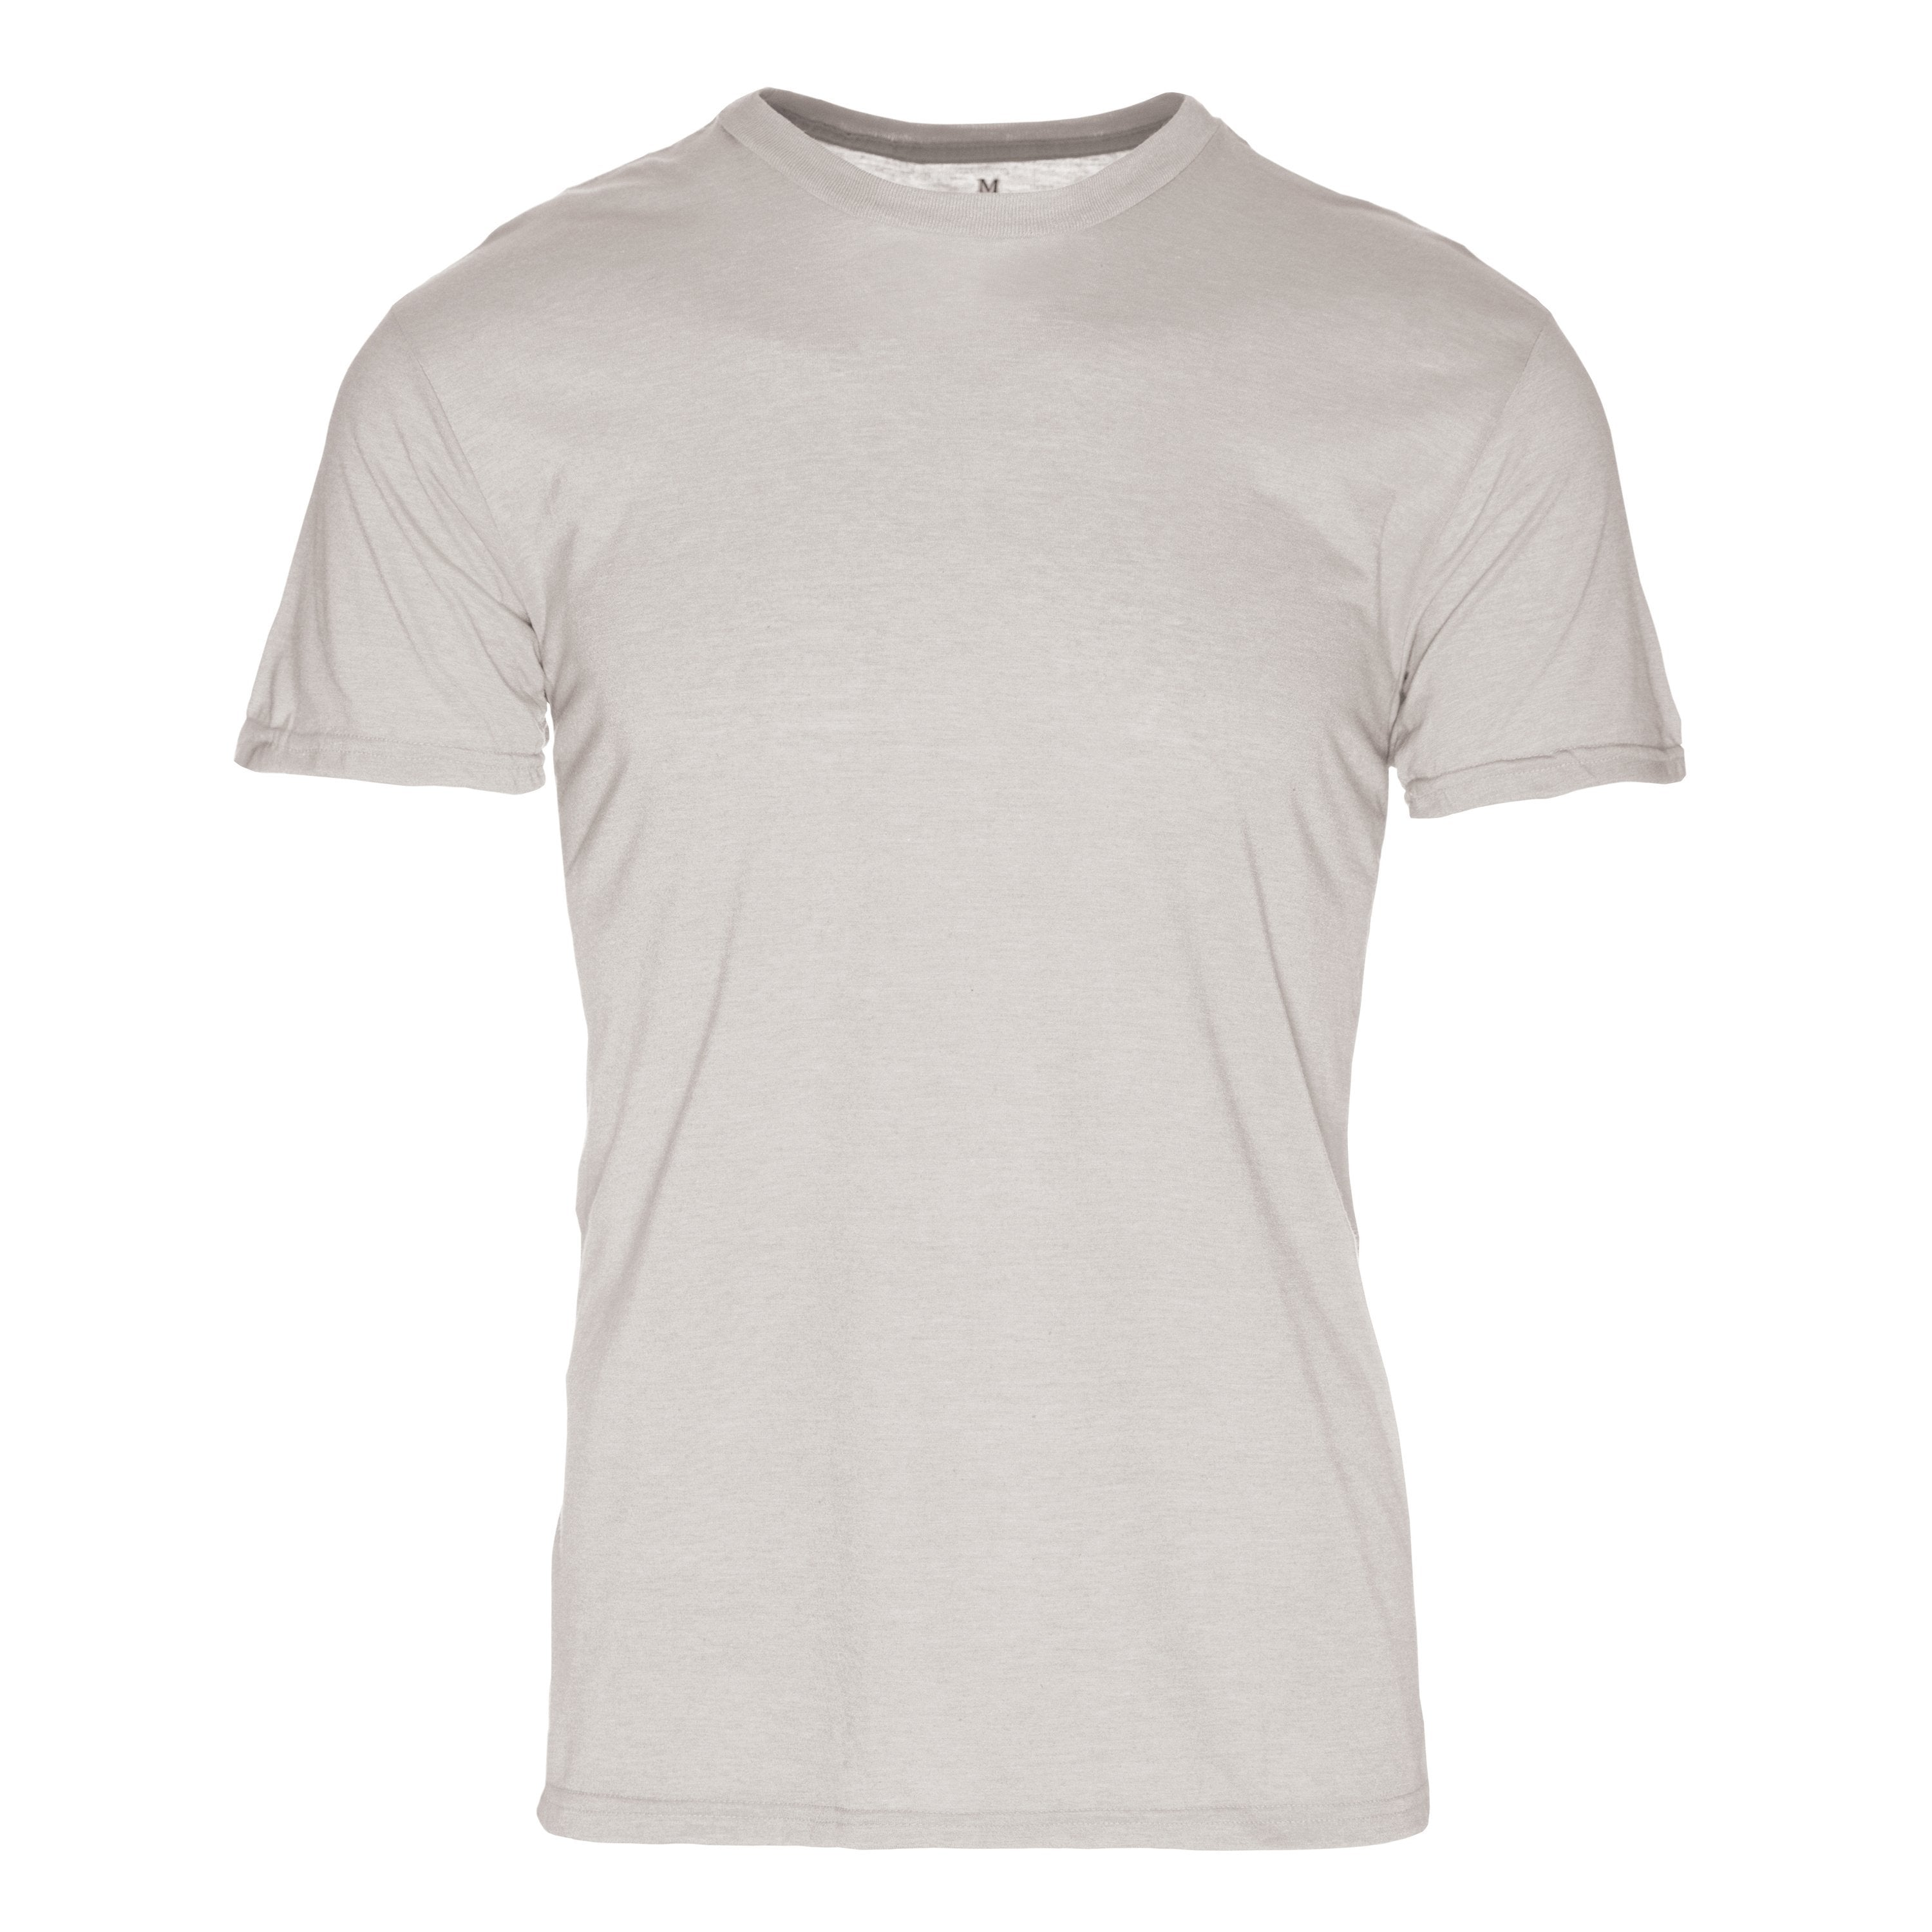 PC101SR Eco REPREVE® Recycled Polyester/Cotton Crew T-Shirt - Silver